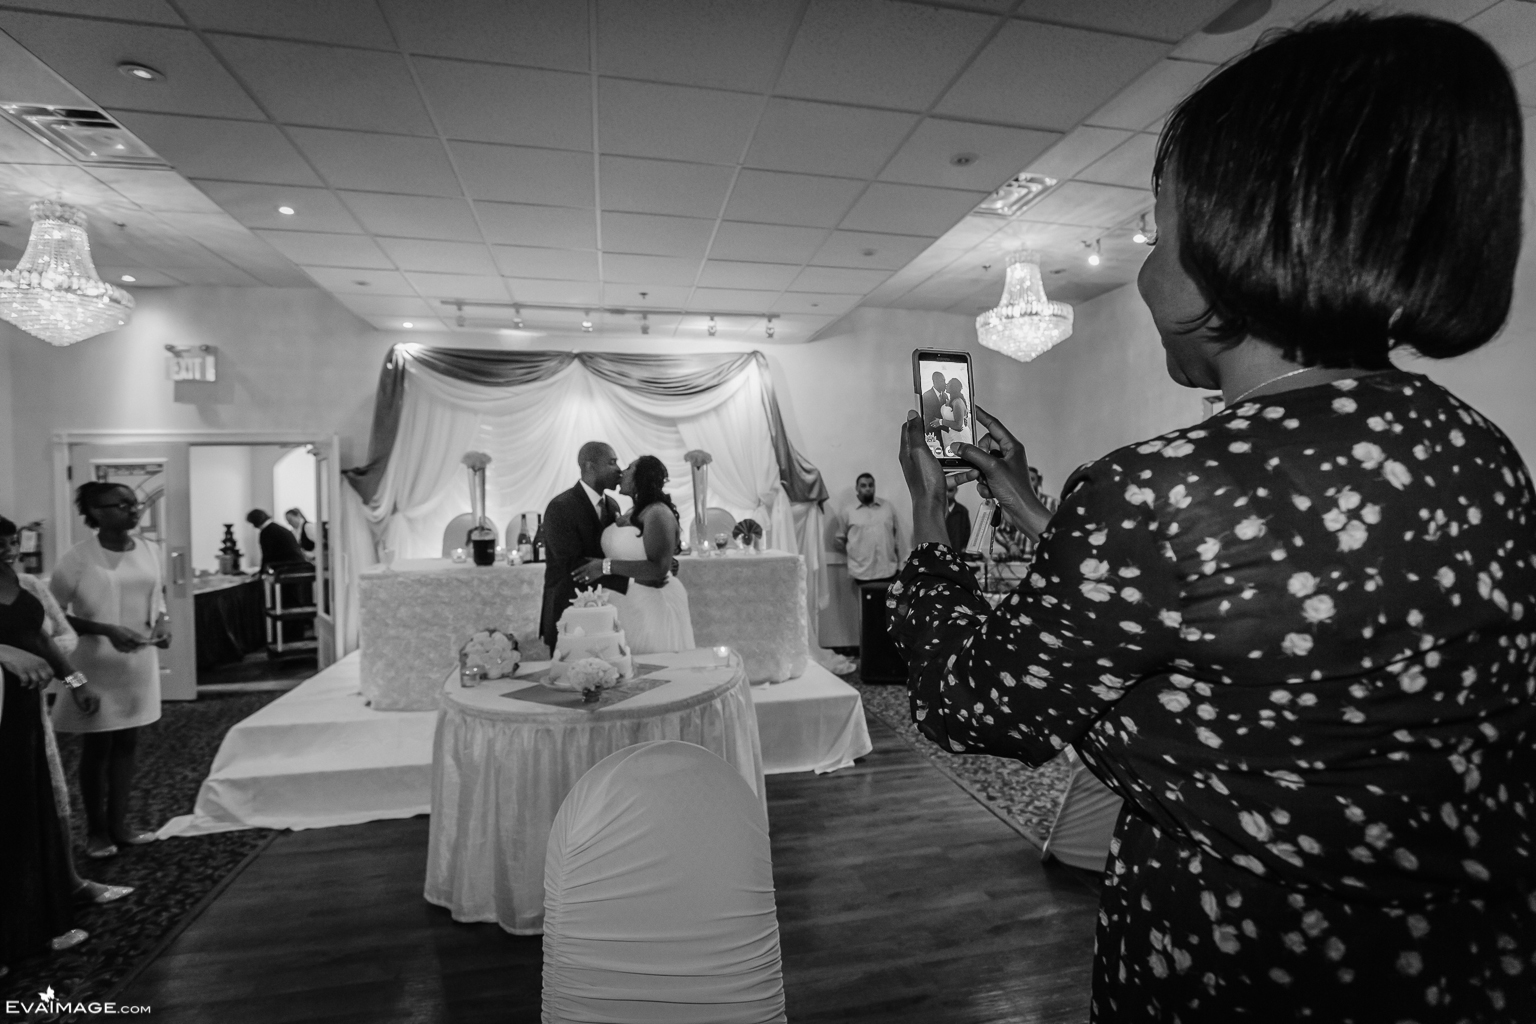 Maple Banquet Hall Mississauga Wedding Reception. Ria & Brian, May 16, 2015. By EvaImage Photography